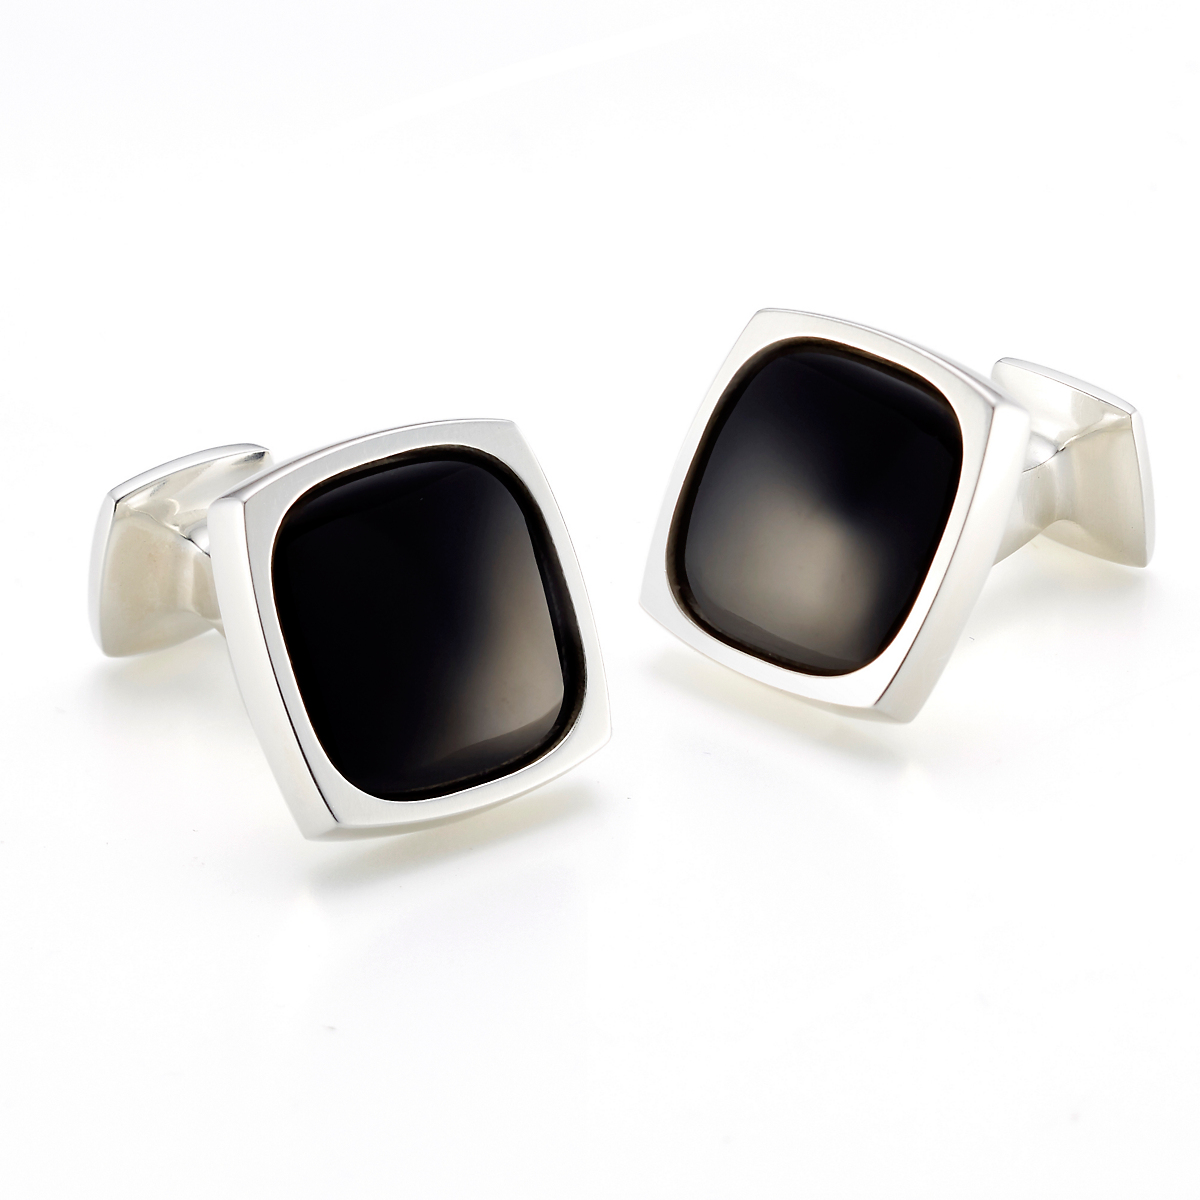 Georg Jensen Black Onyx Square Cufflinks